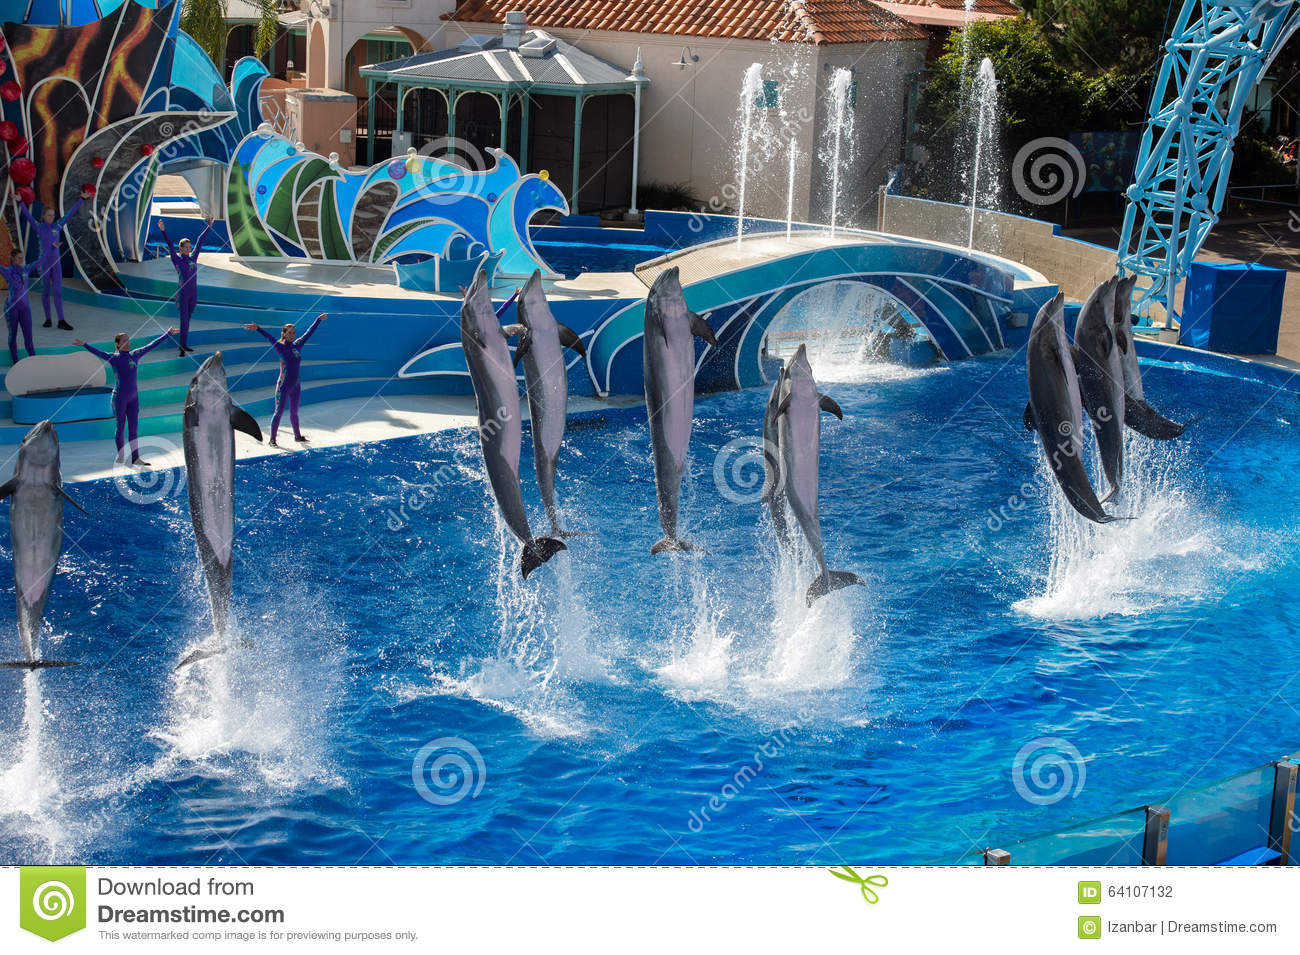 San diego usa november 15 2015 the dolphin show at for Pool show orlando 2015